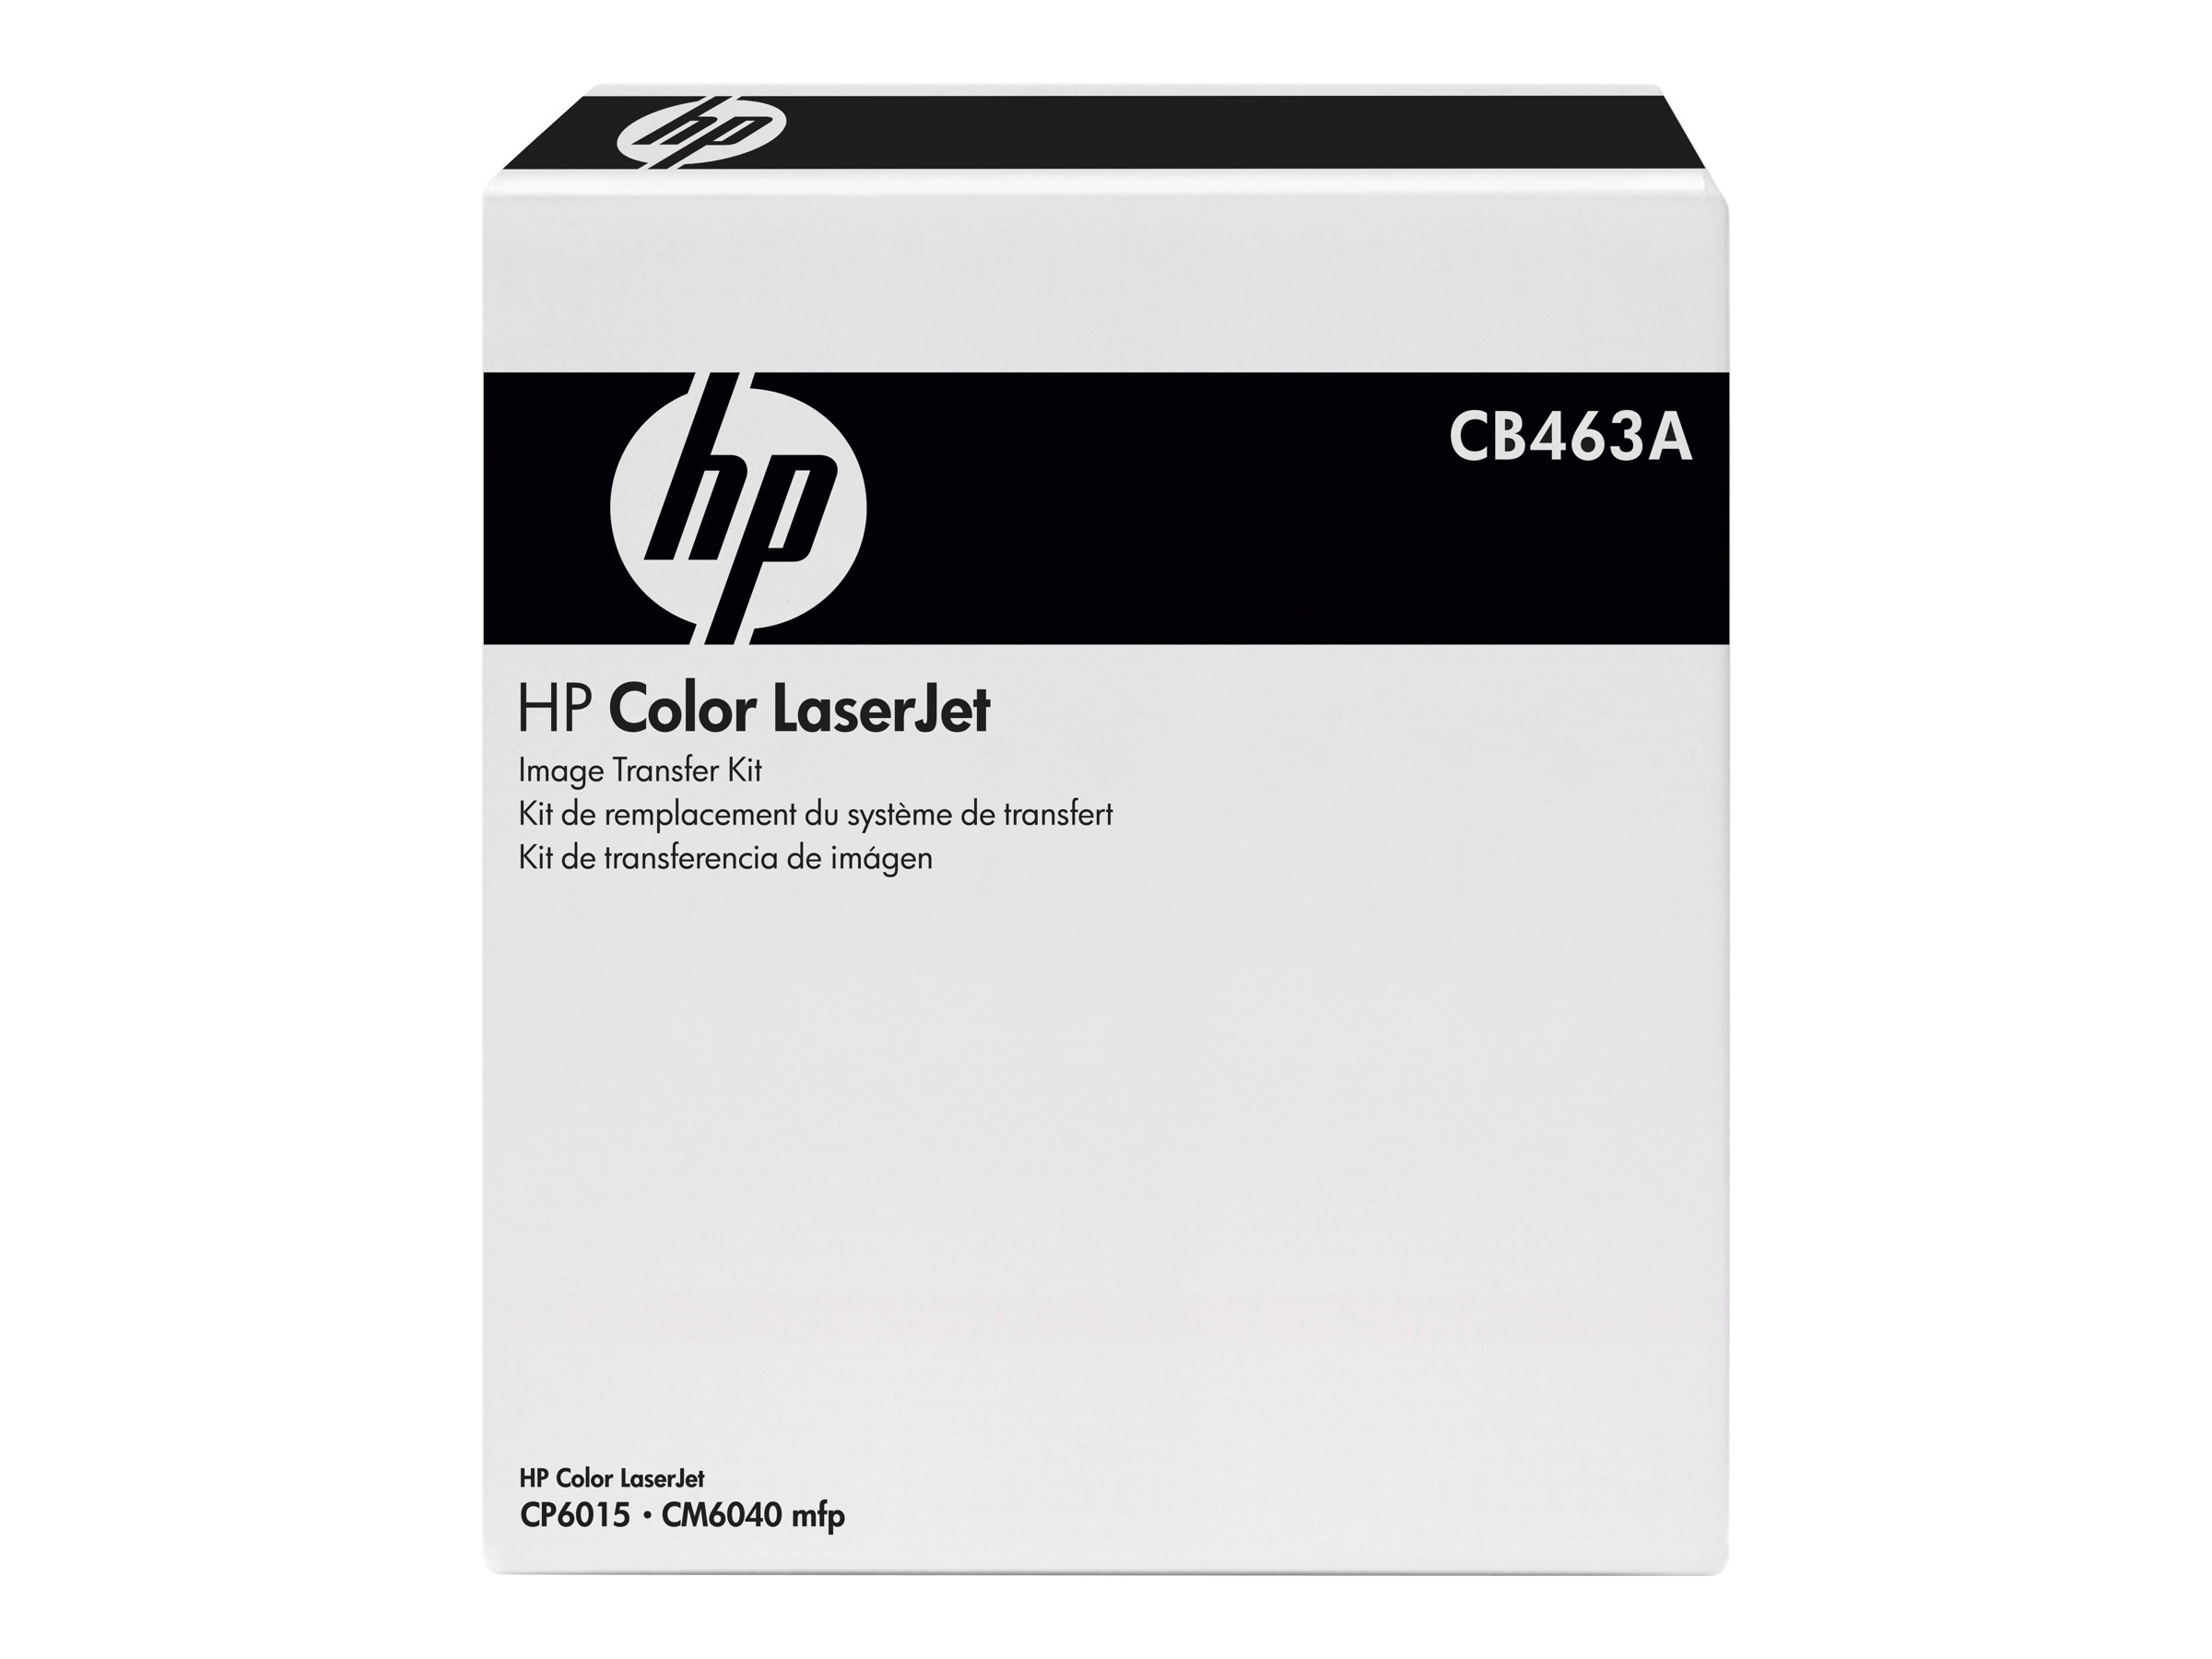 HP Image Transfer Kit - Drucker - Transfer Kit - für Color LaserJet CM6030, CM6040, CP6015